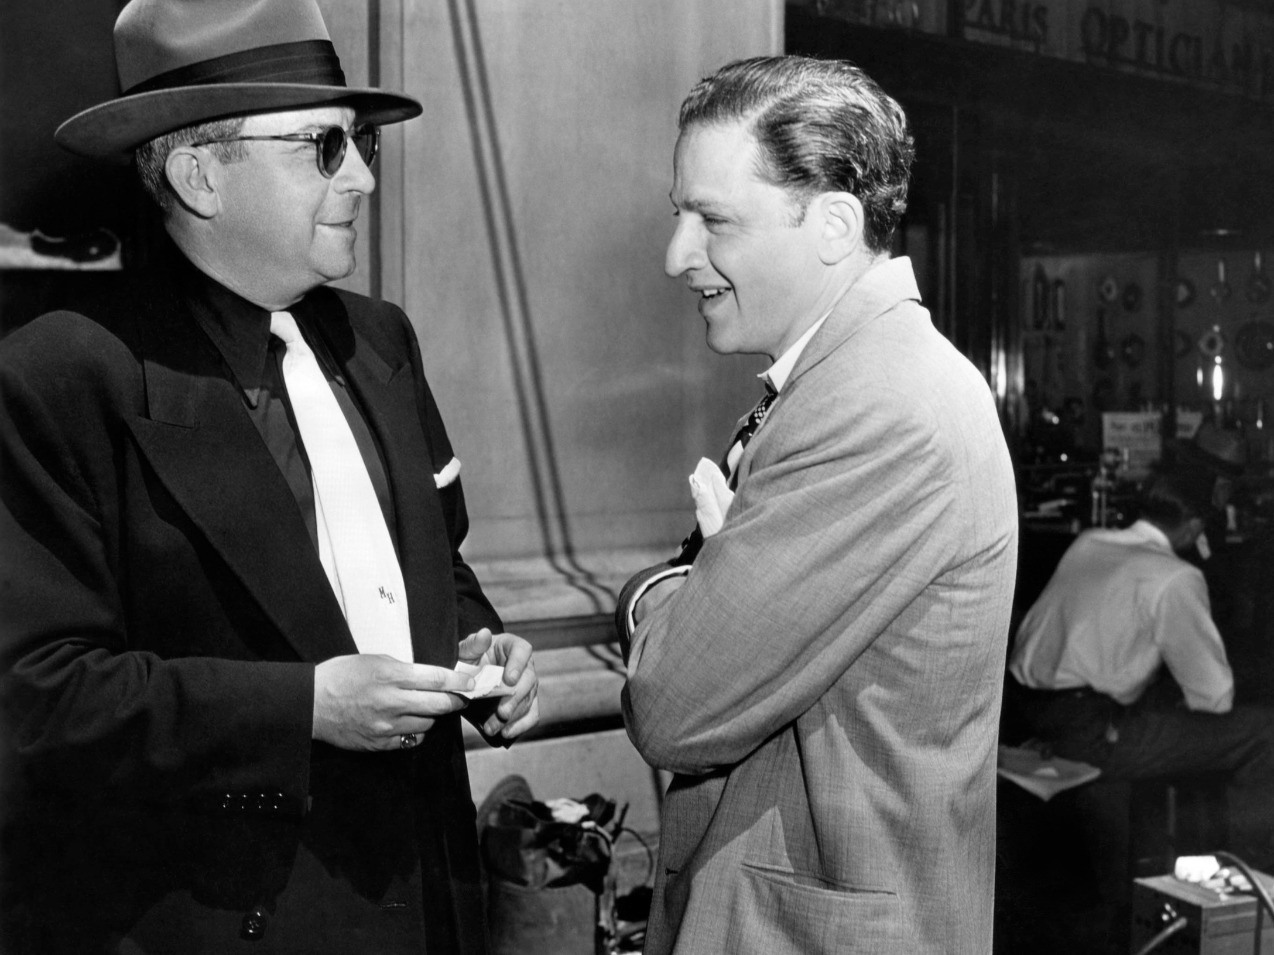 Walkers in the City: Jules Dassin and Bruce Goldstein in